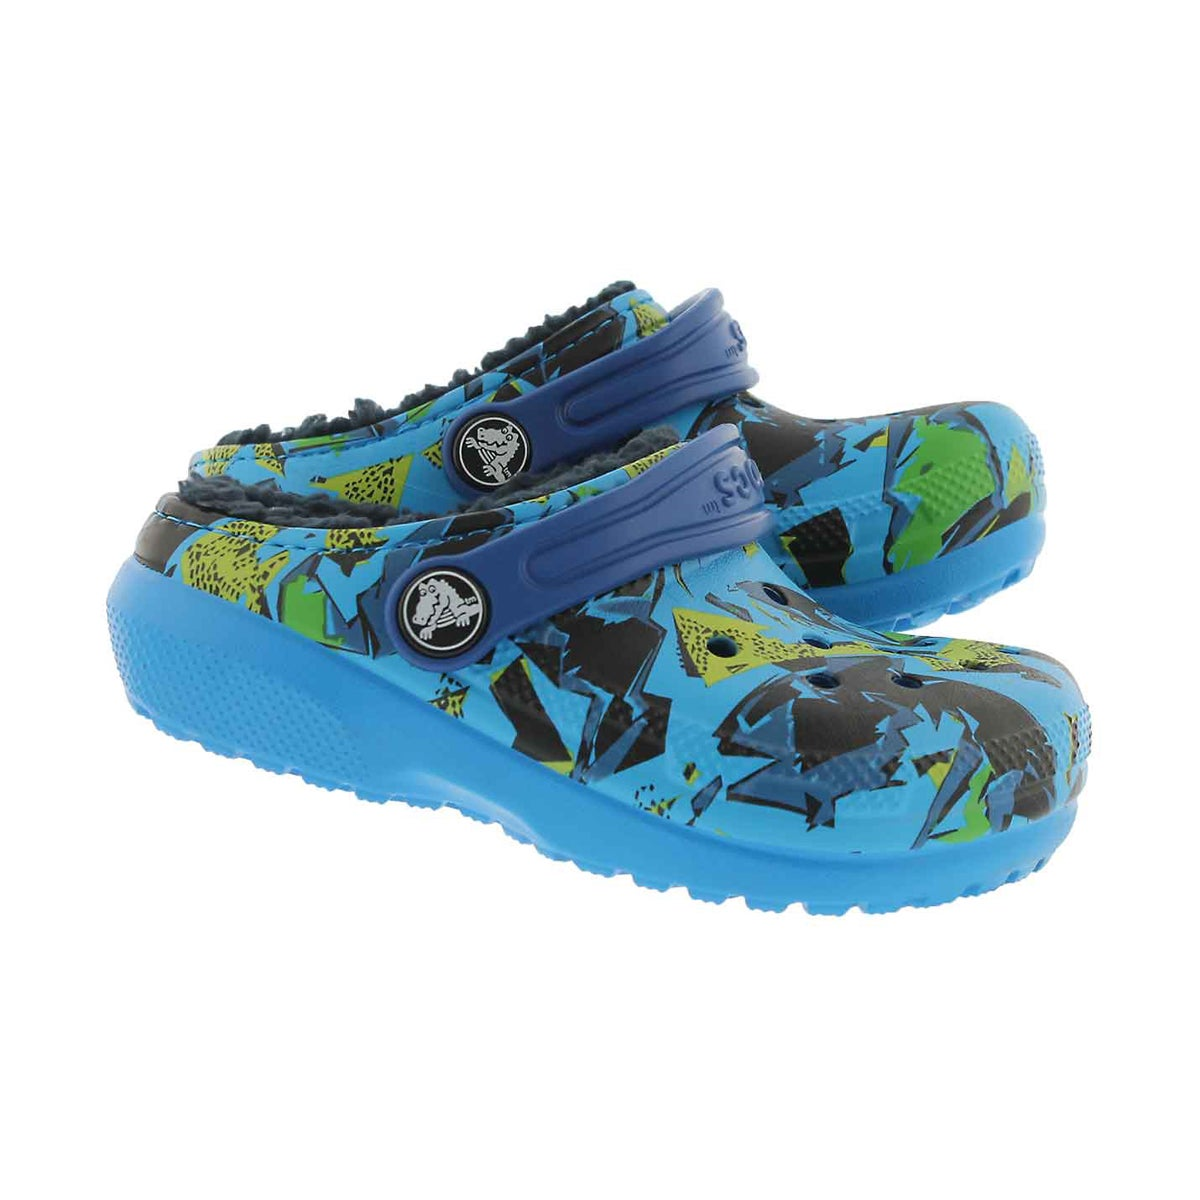 Bys Classic Lined Graphic ocn/nvy clog